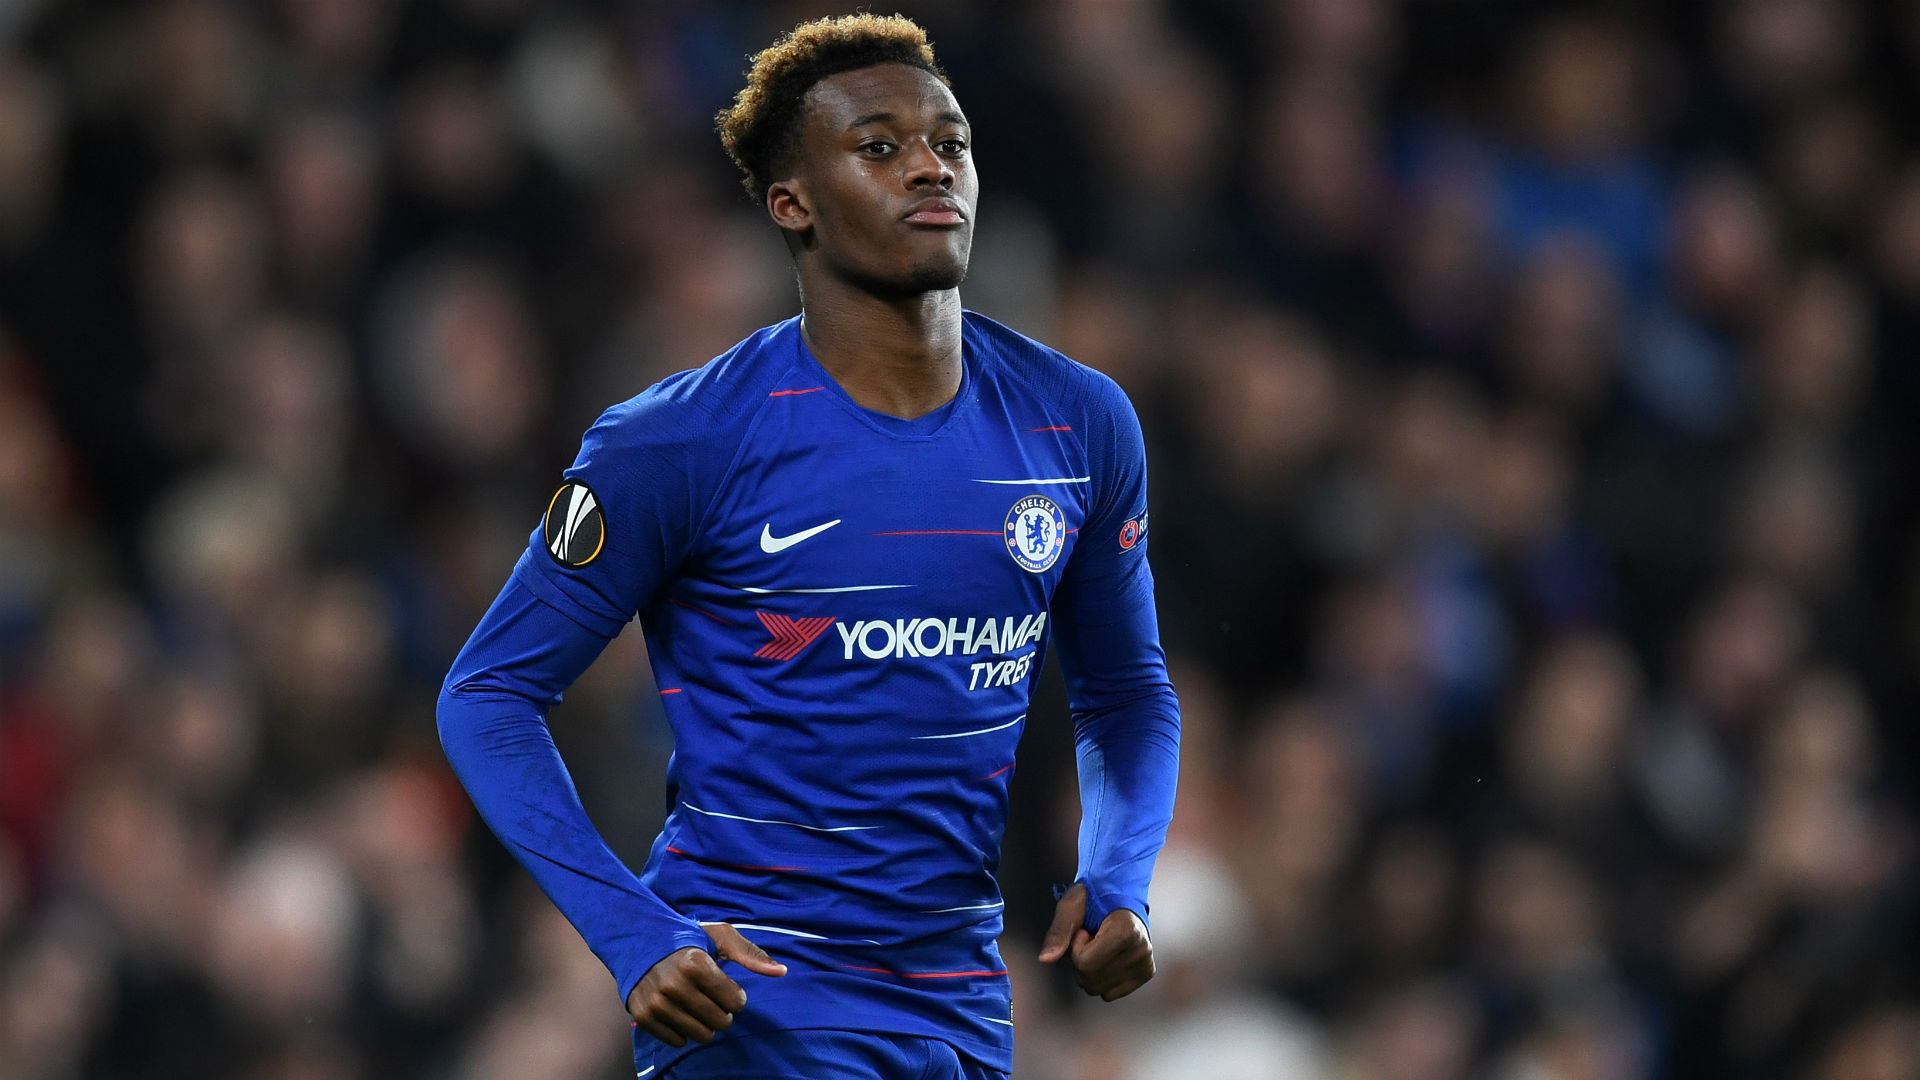 Hudson-Odoi is a player we absolutely want to sign - Bayern chief